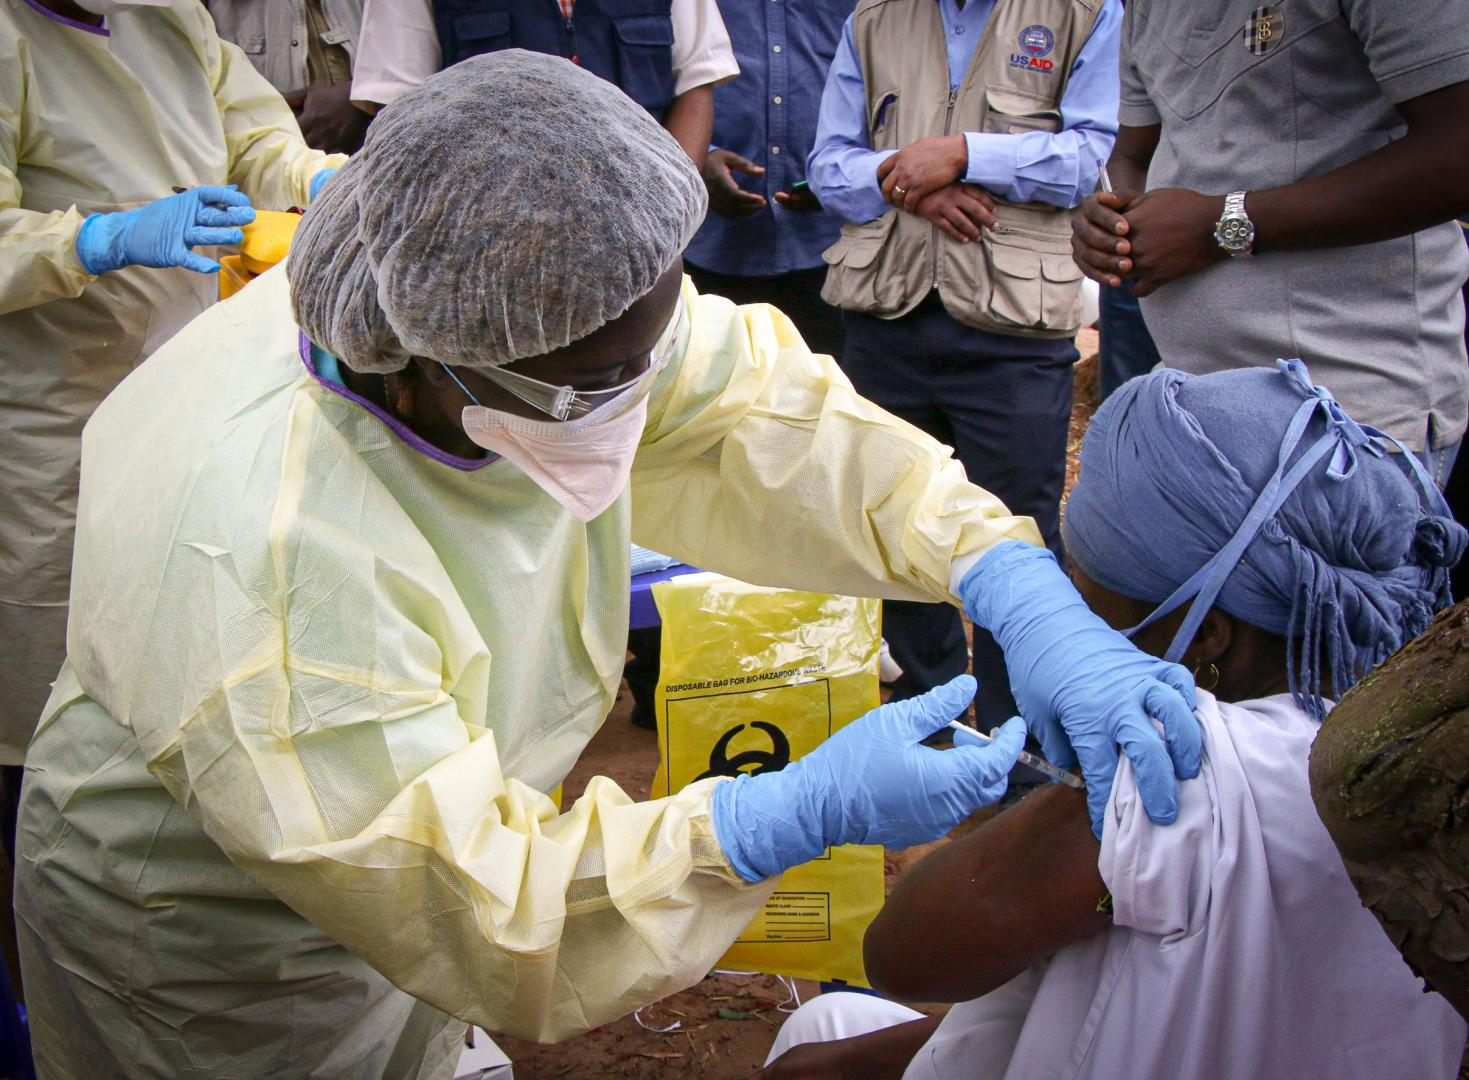 Ebola vaccination starts in Guinea to curb new outbreak